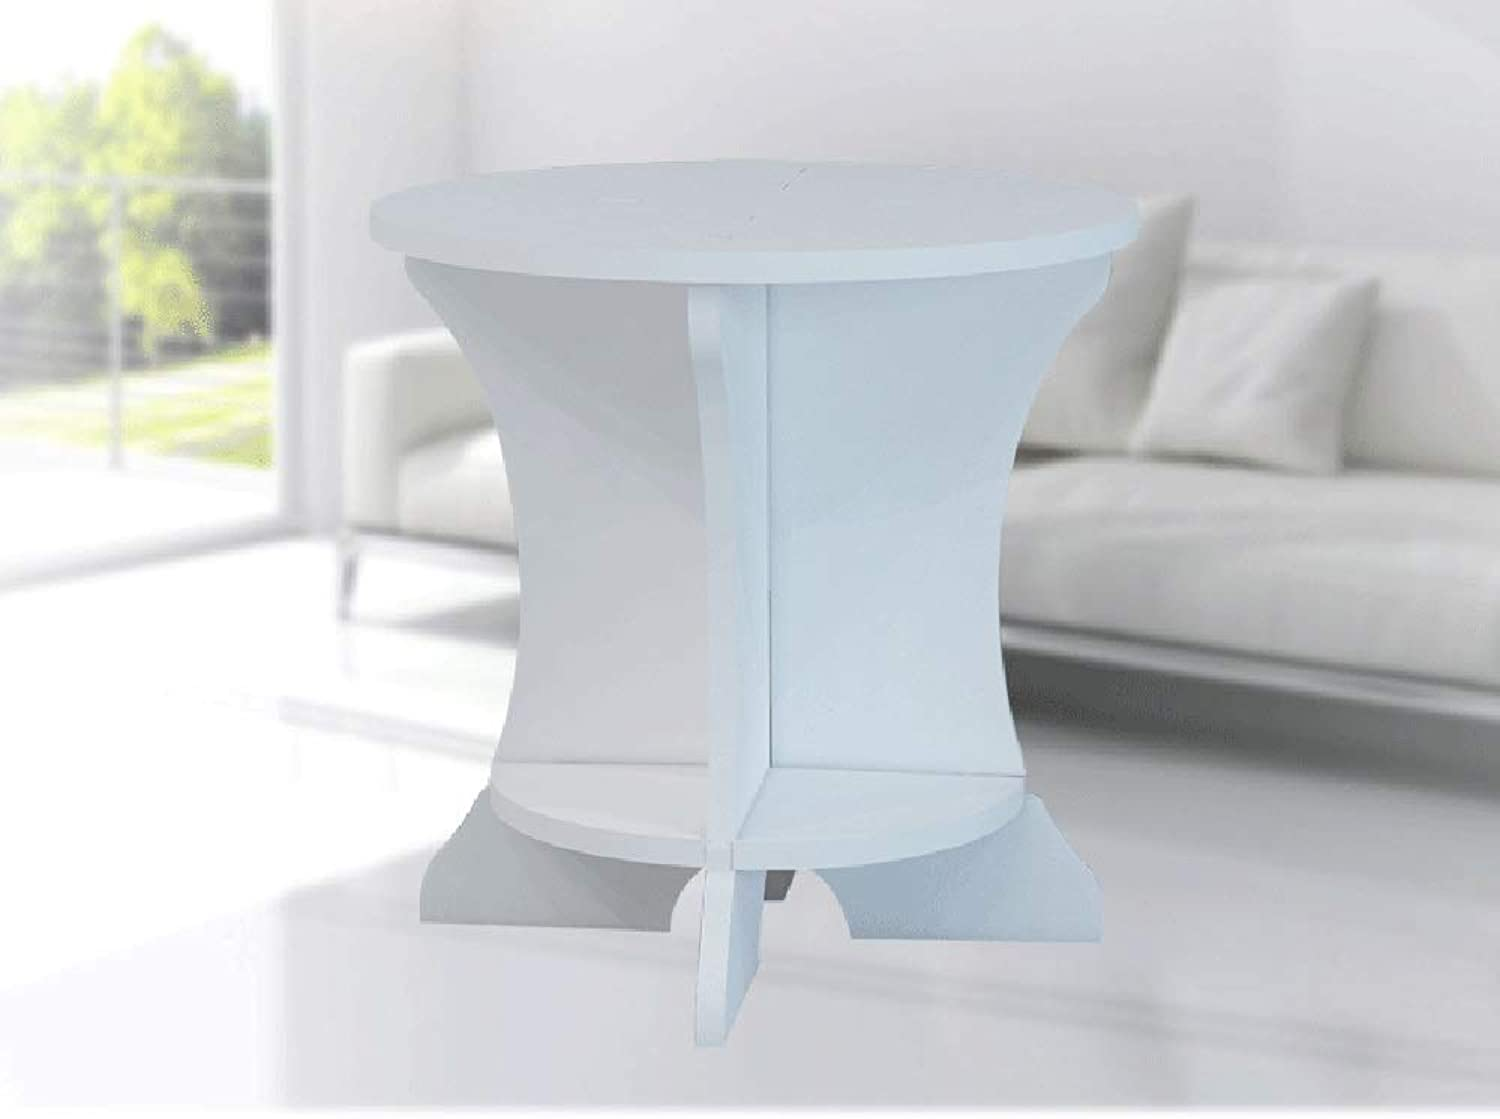 Creative Home Stool Simple European Living Room Stool Adult shoes Bench Waterproof Plastic Small Stool